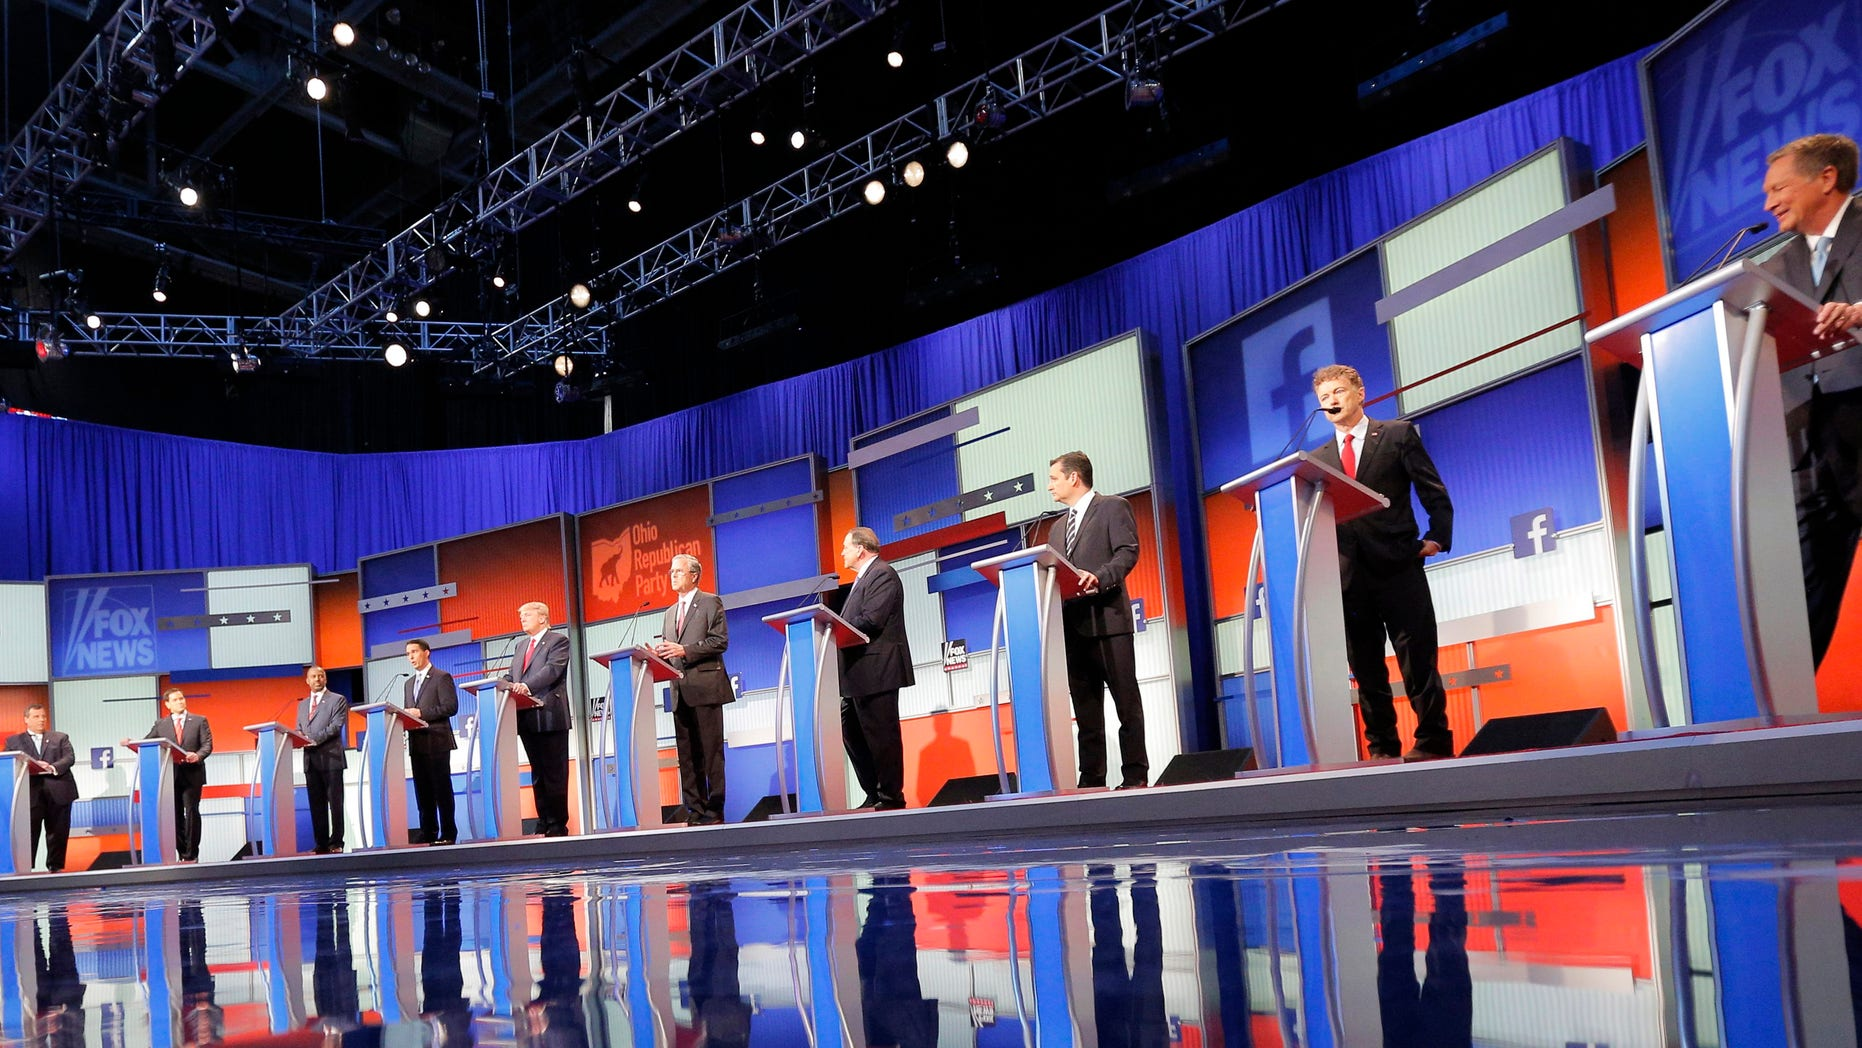 Ten Republican 2016 U.S. presidential candidates debate at the first official Republican presidential candidates debate of the 2016 U.S. presidential campaign in Cleveland, Ohio, August 6, 2015.